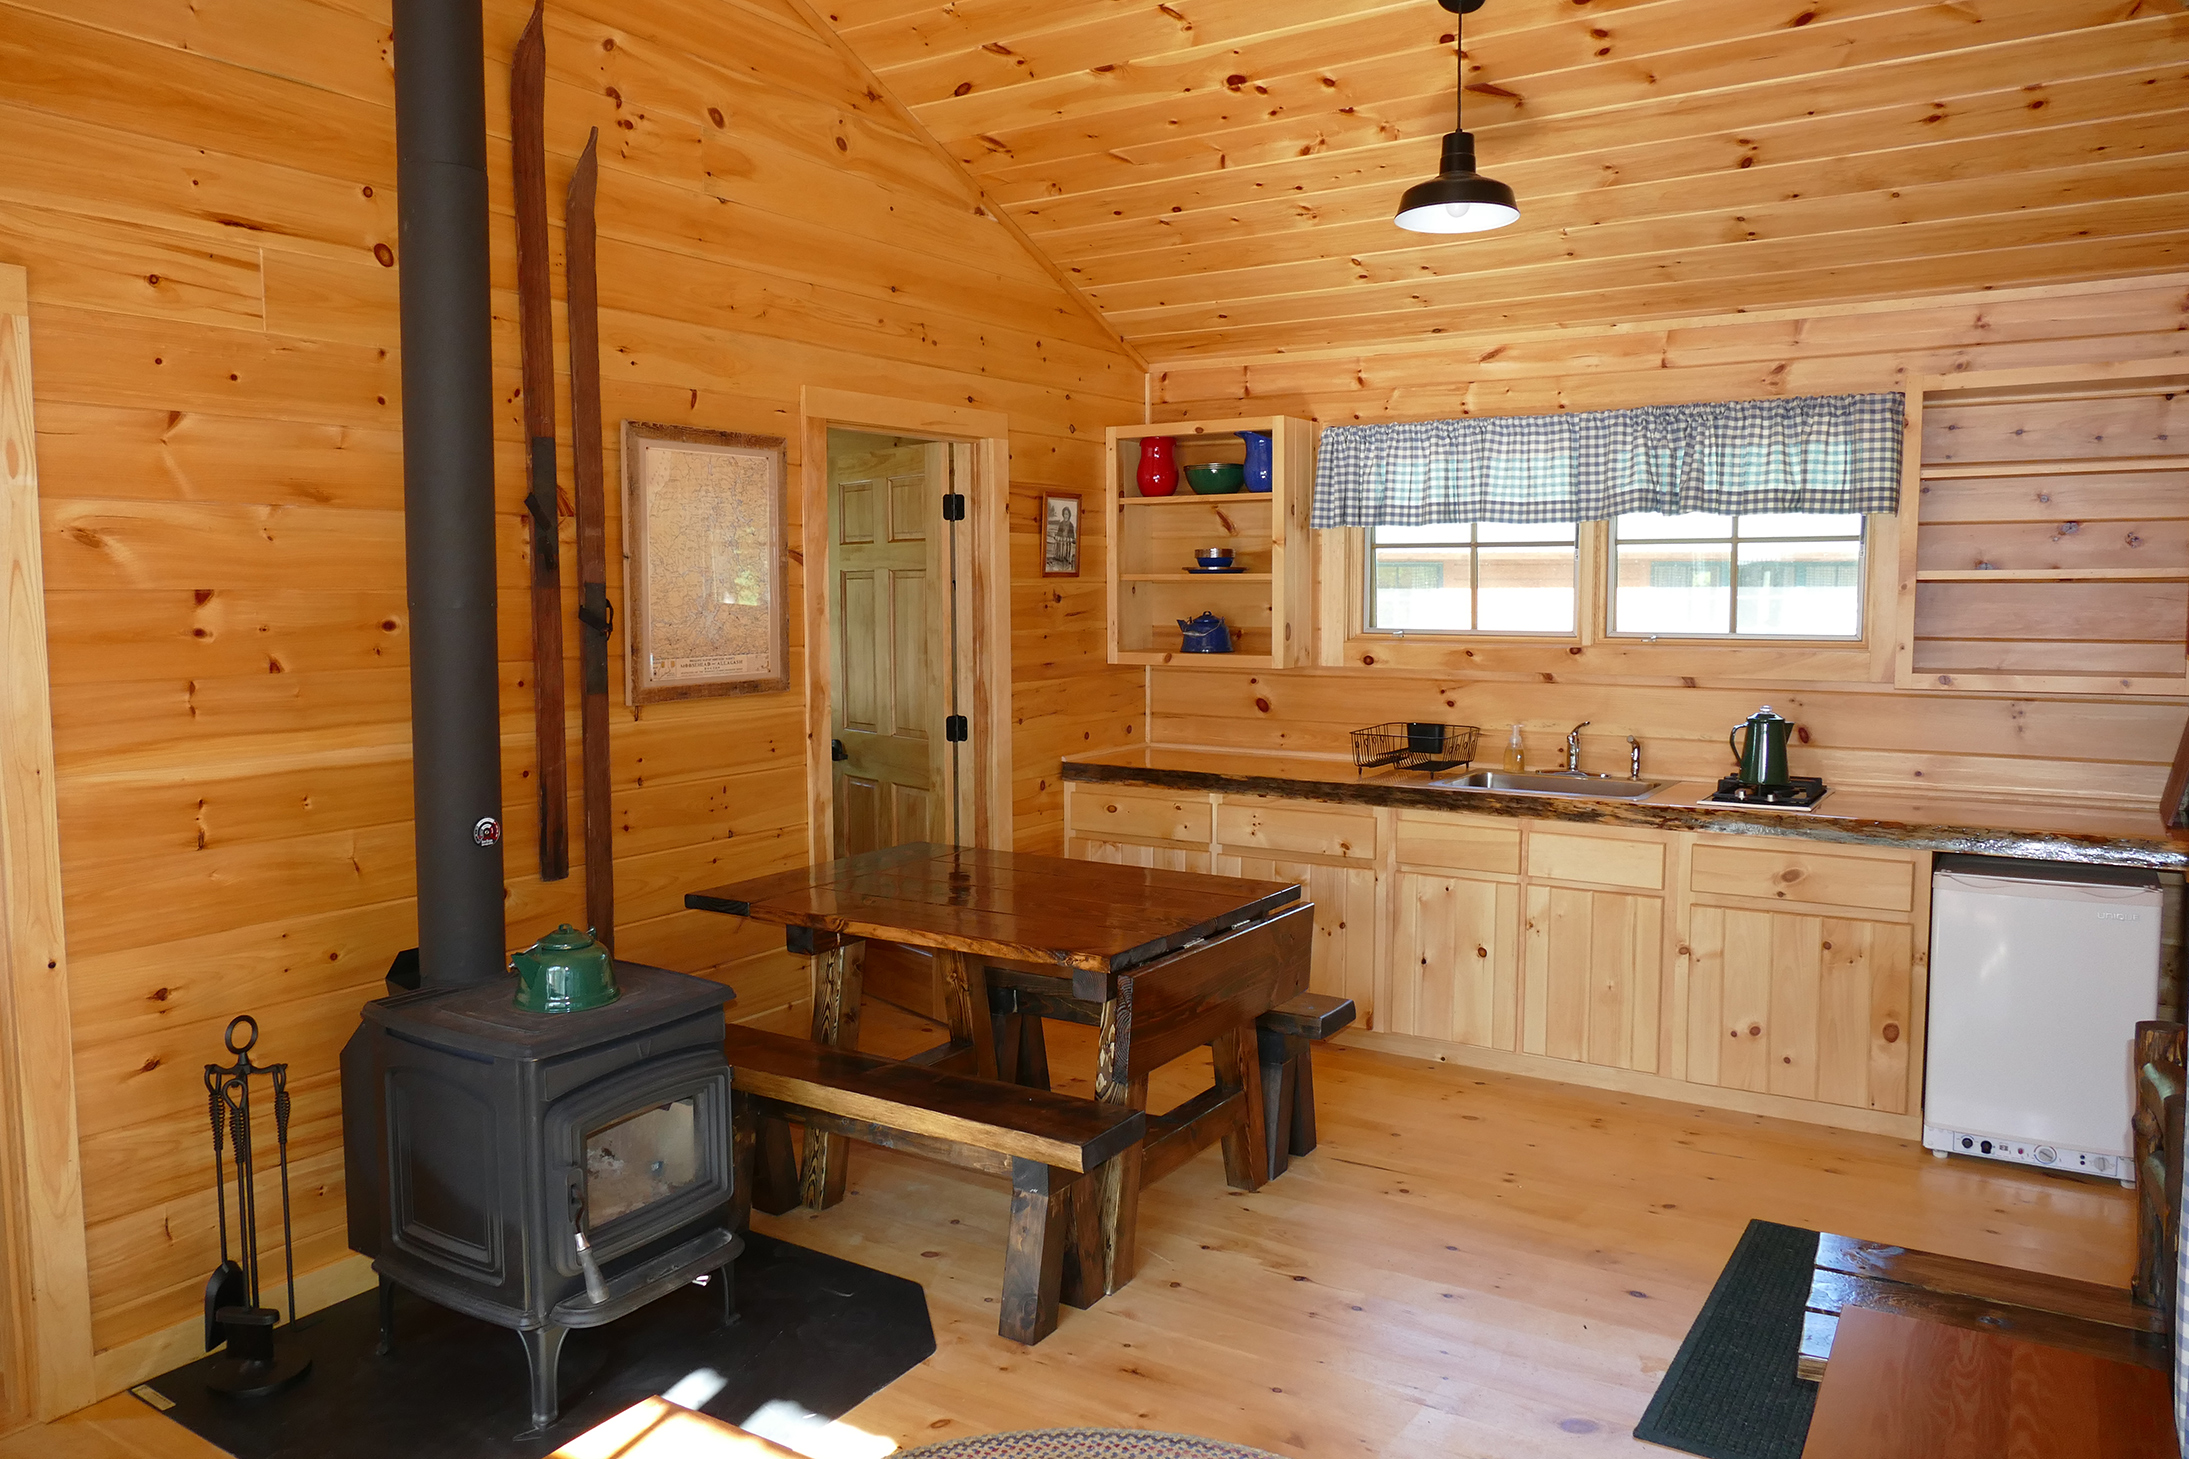 Inside the cabins at Medawisla.